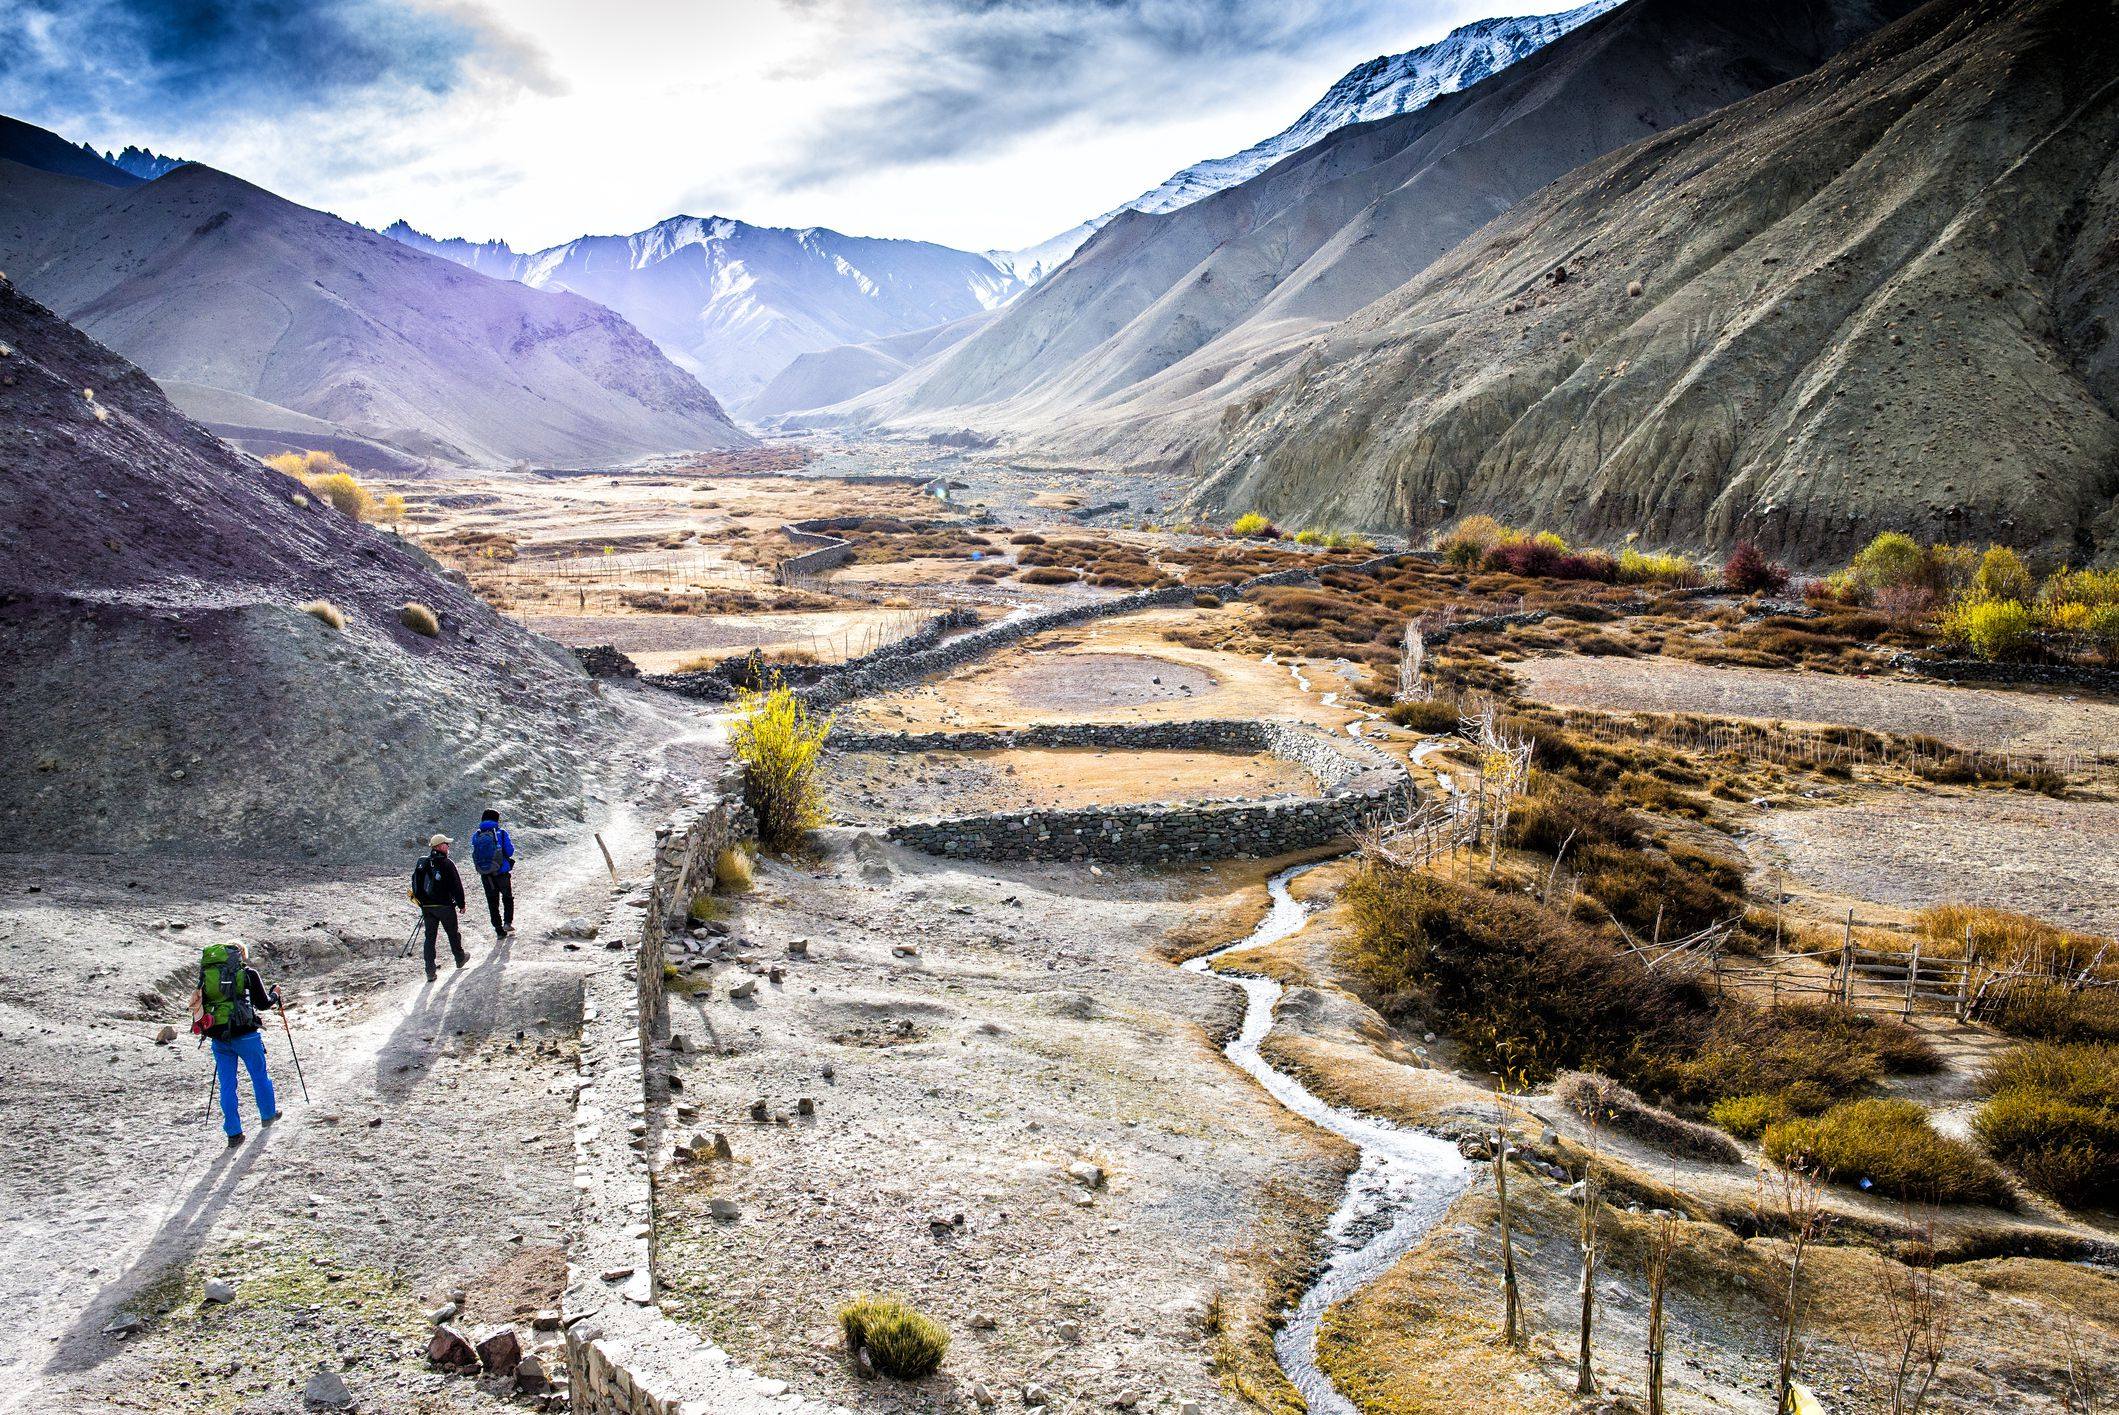 6 Best Treks To Take In Ladakh For All Fitness Levels